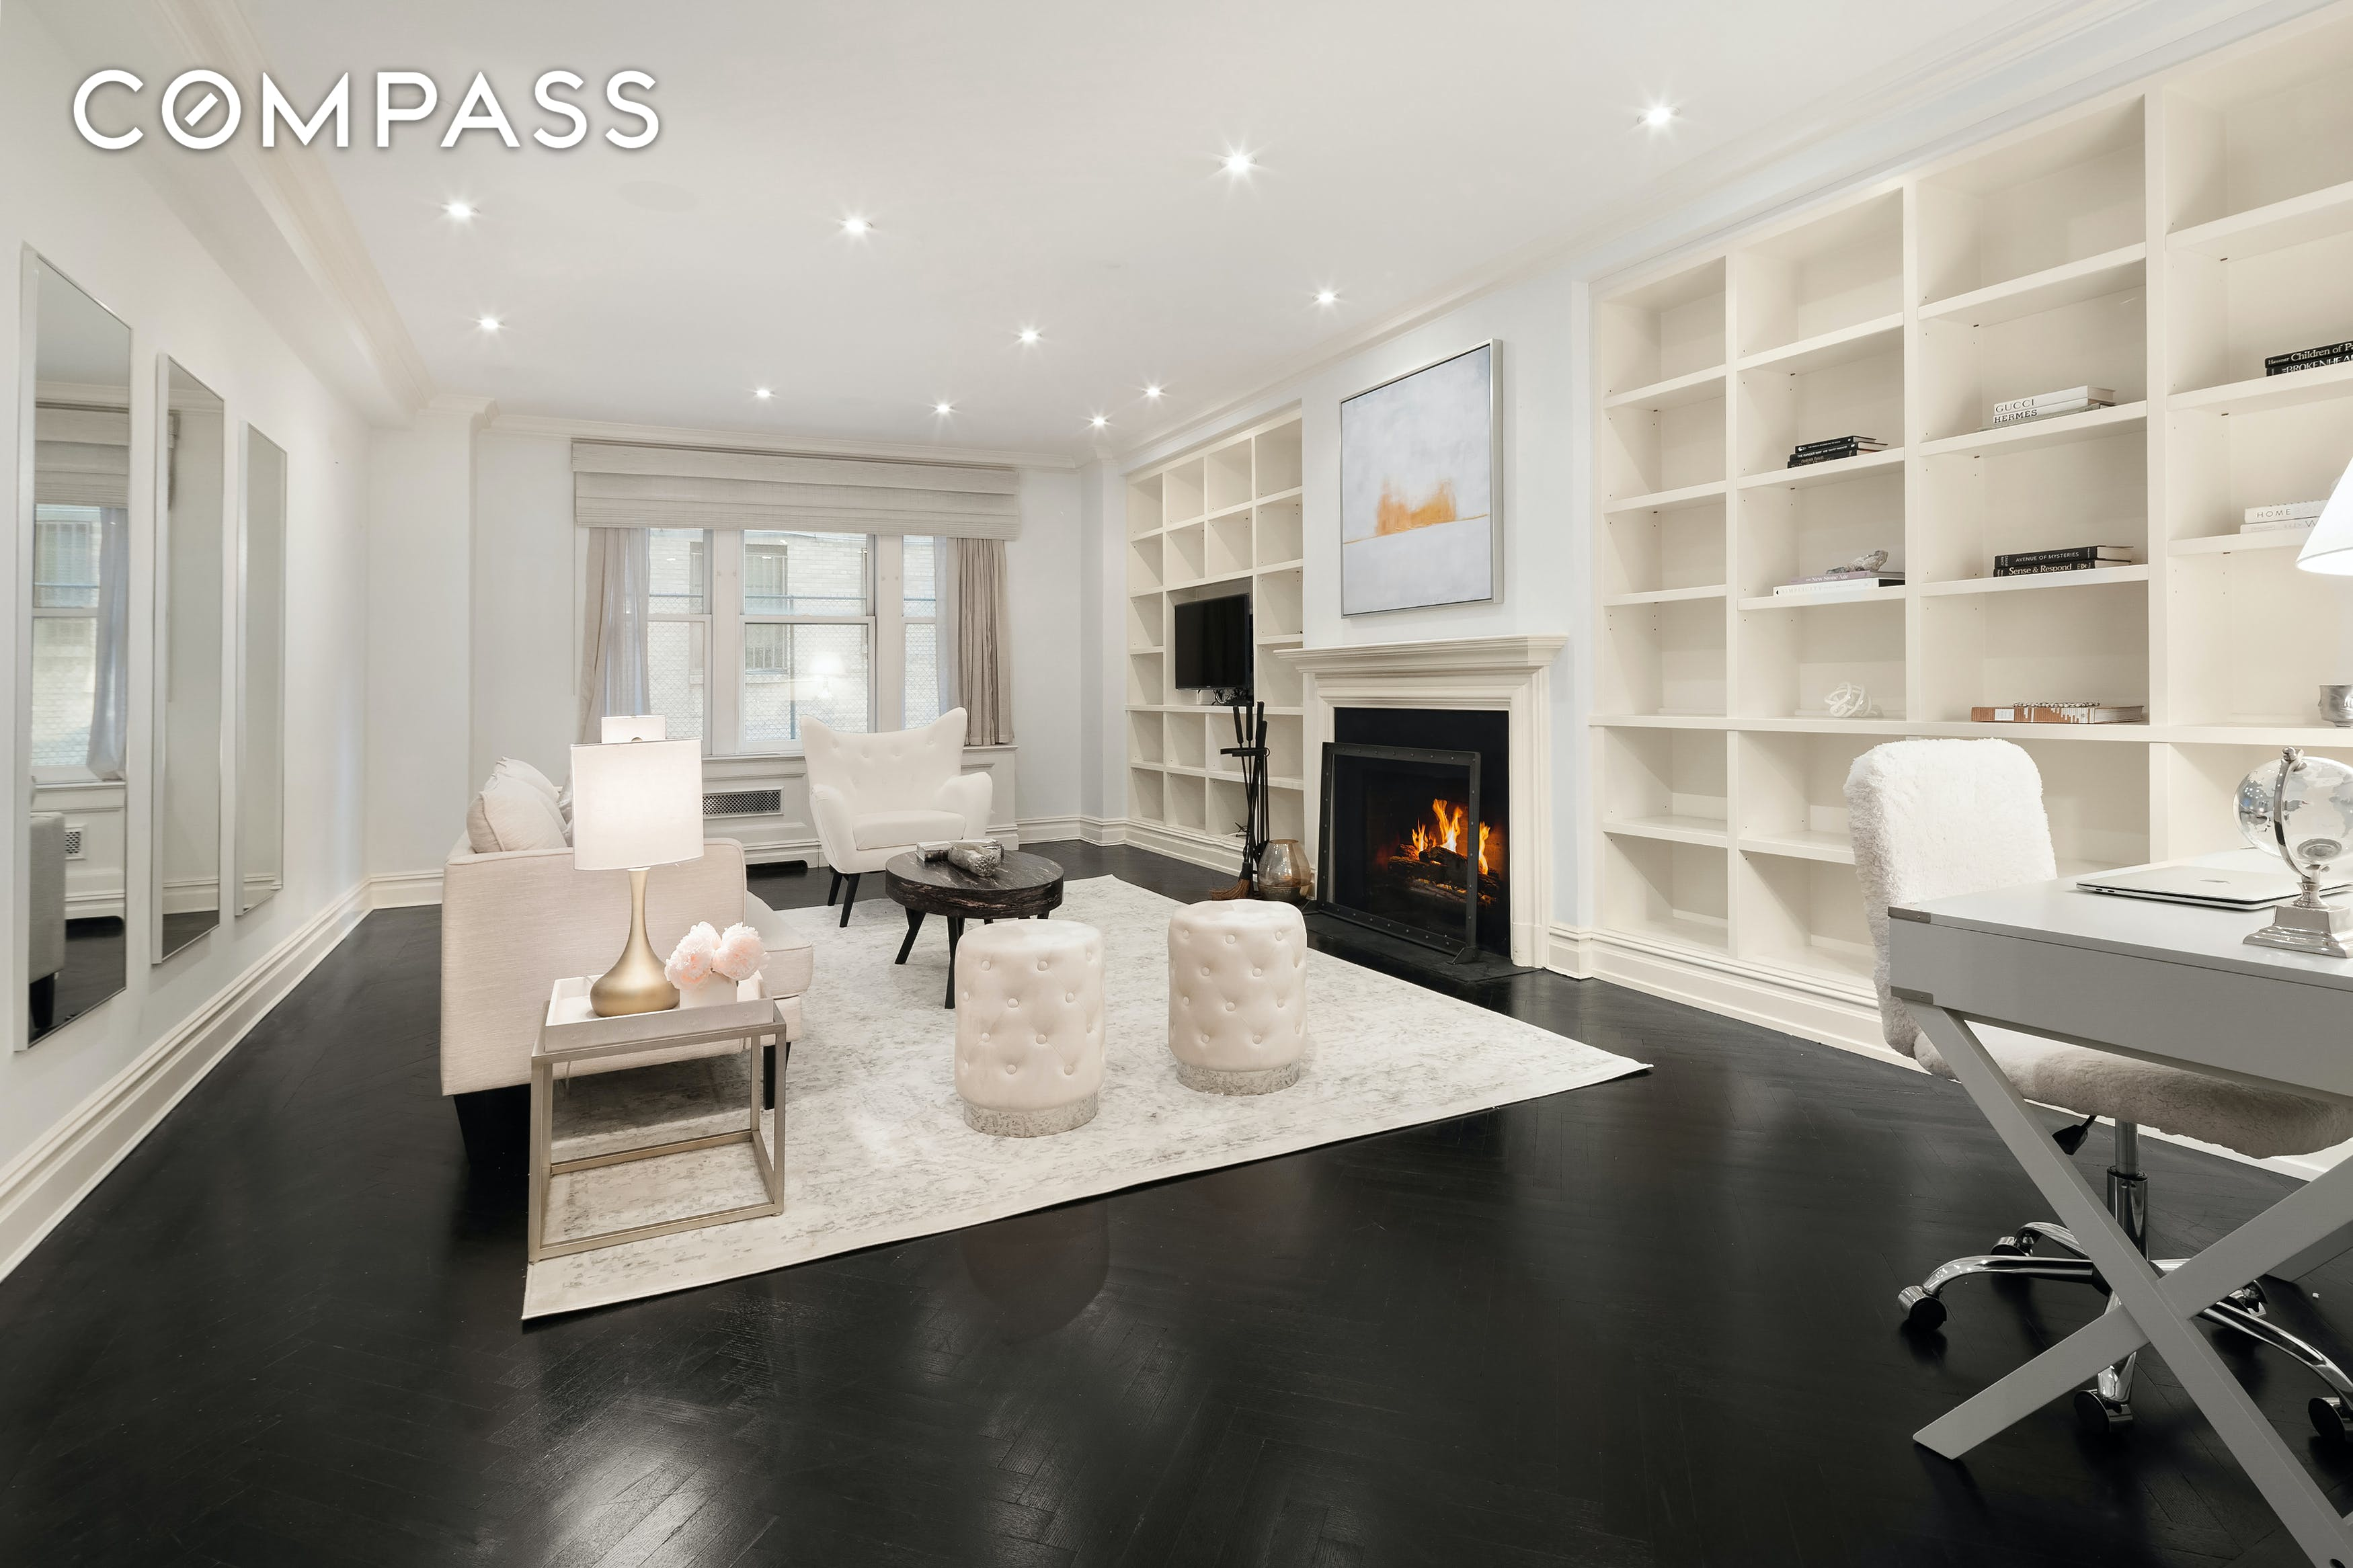 primary photo for 50 East 72nd Street 2-B, New York, NY 10021, US